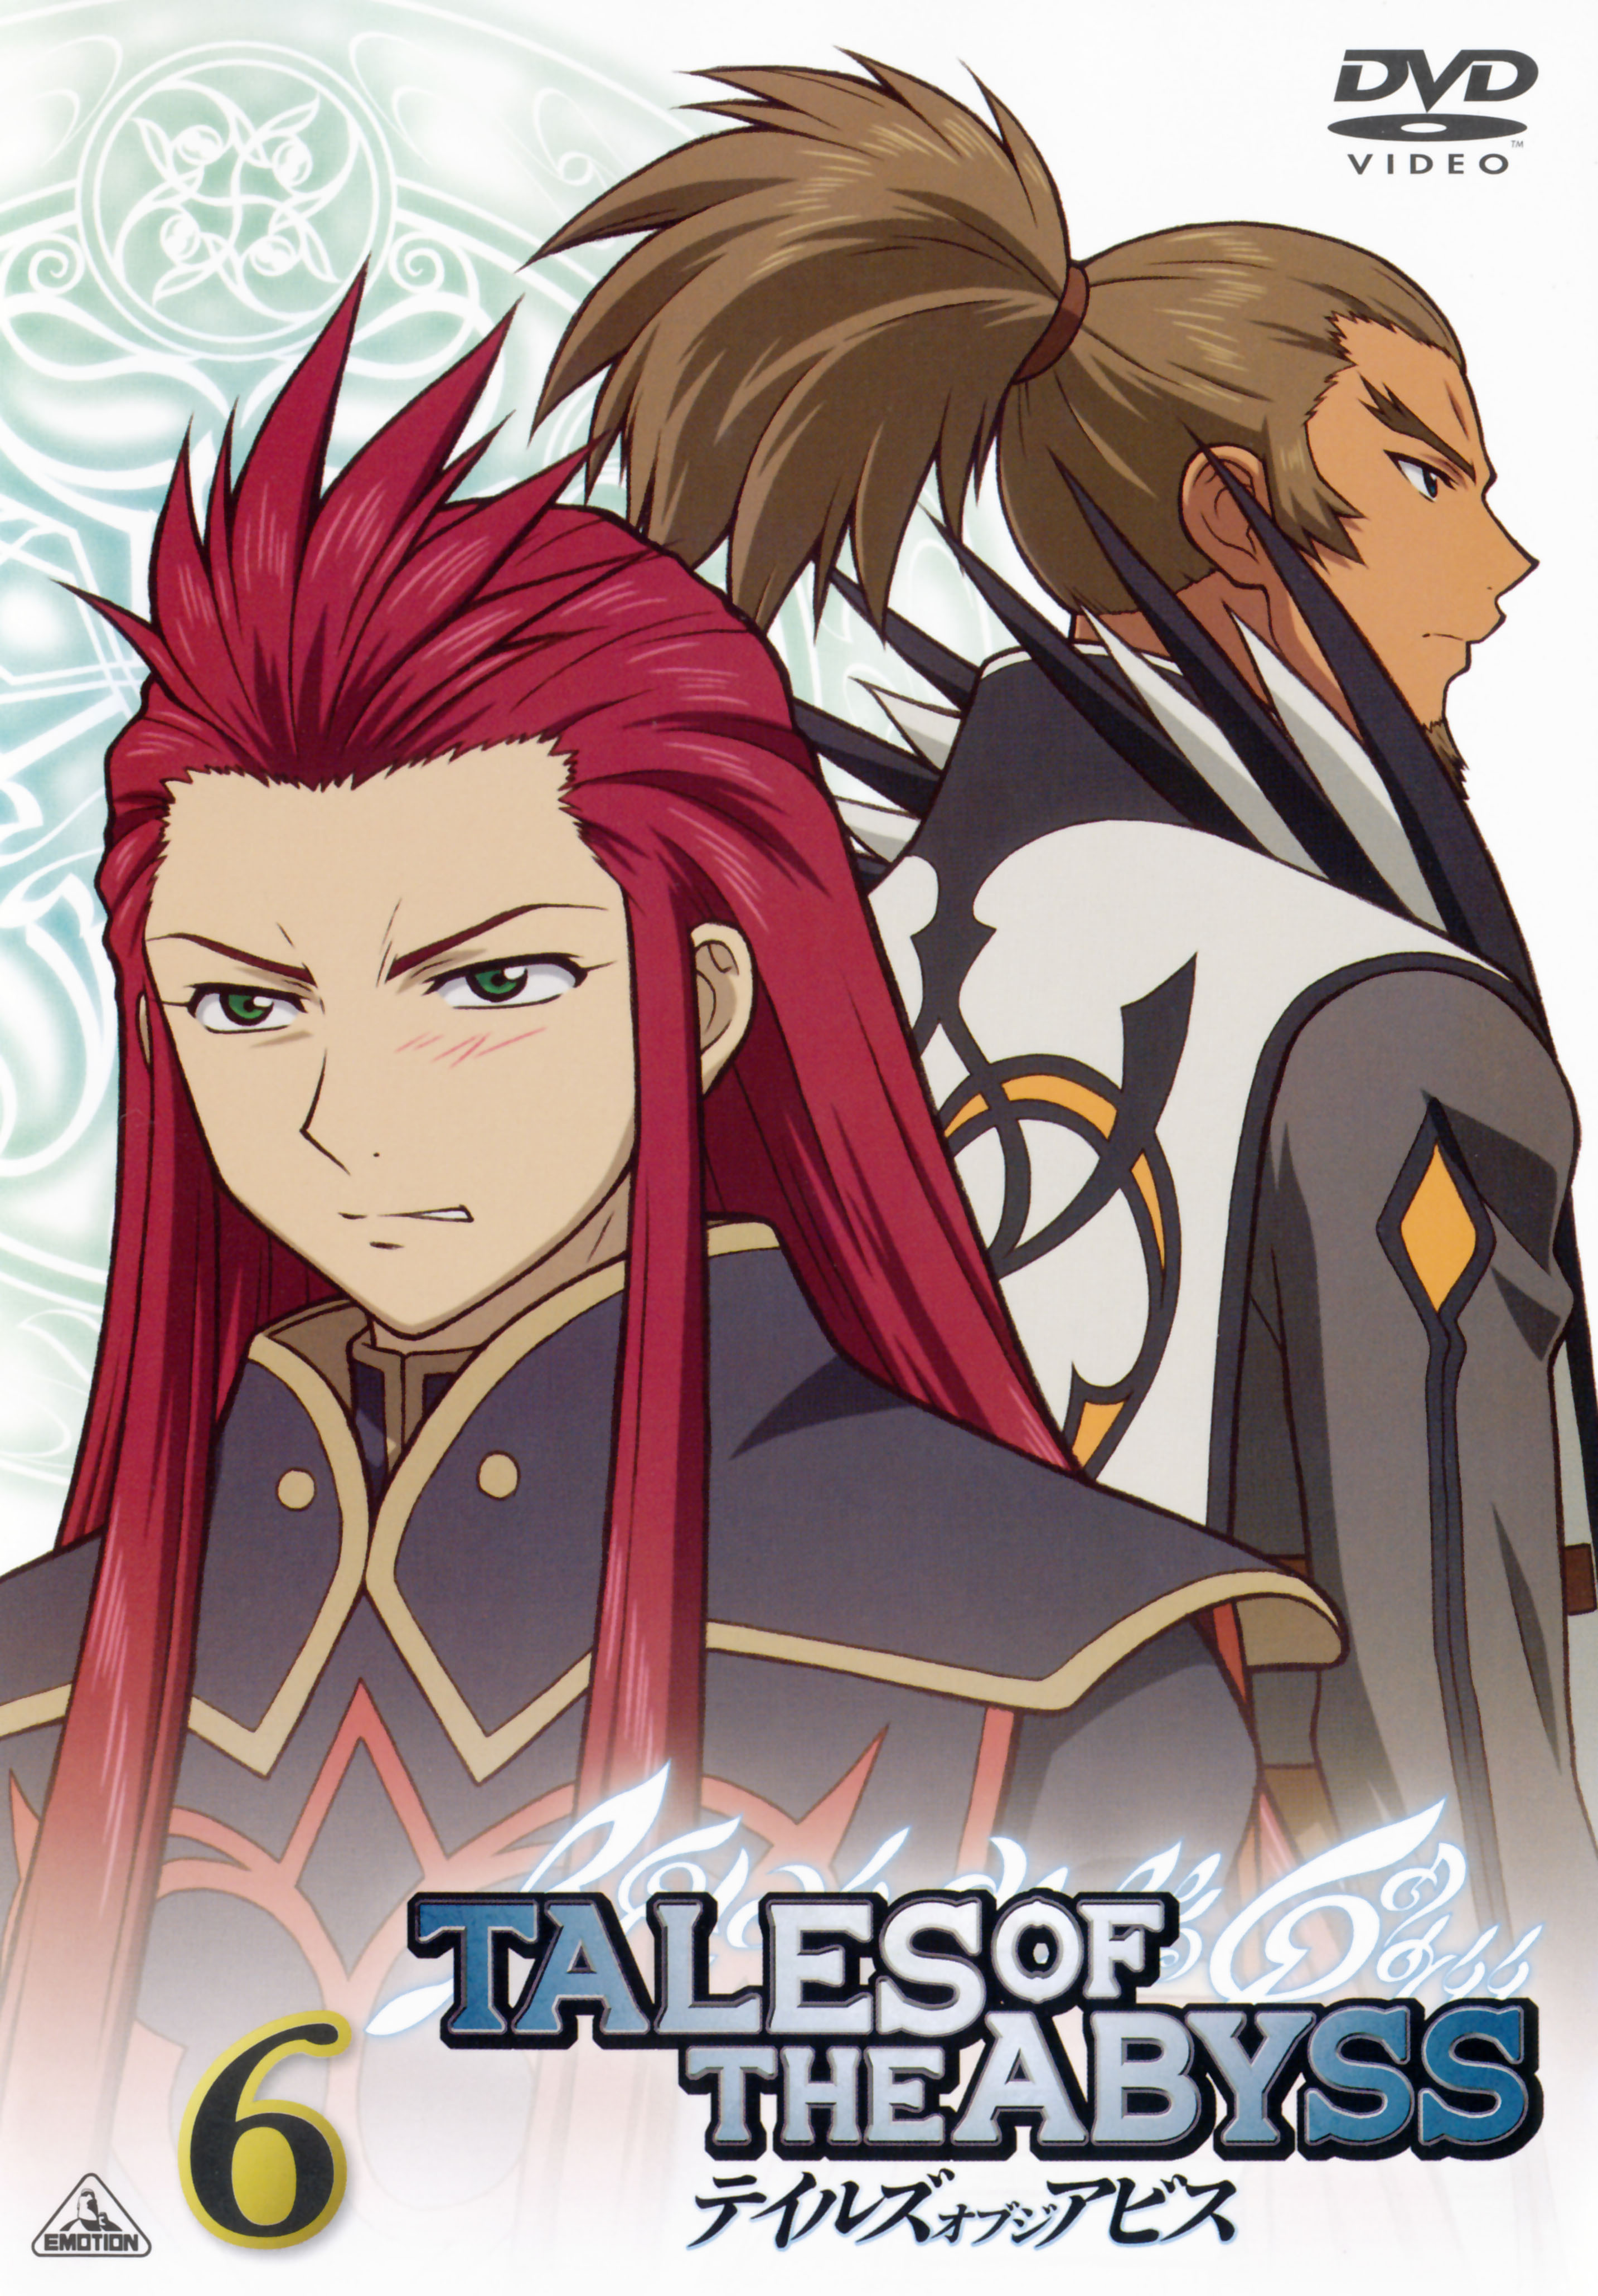 Yoshihito  Namco  Tales of the Abyss  Van Grants  Asch the BloodyTales Of The Abyss Van